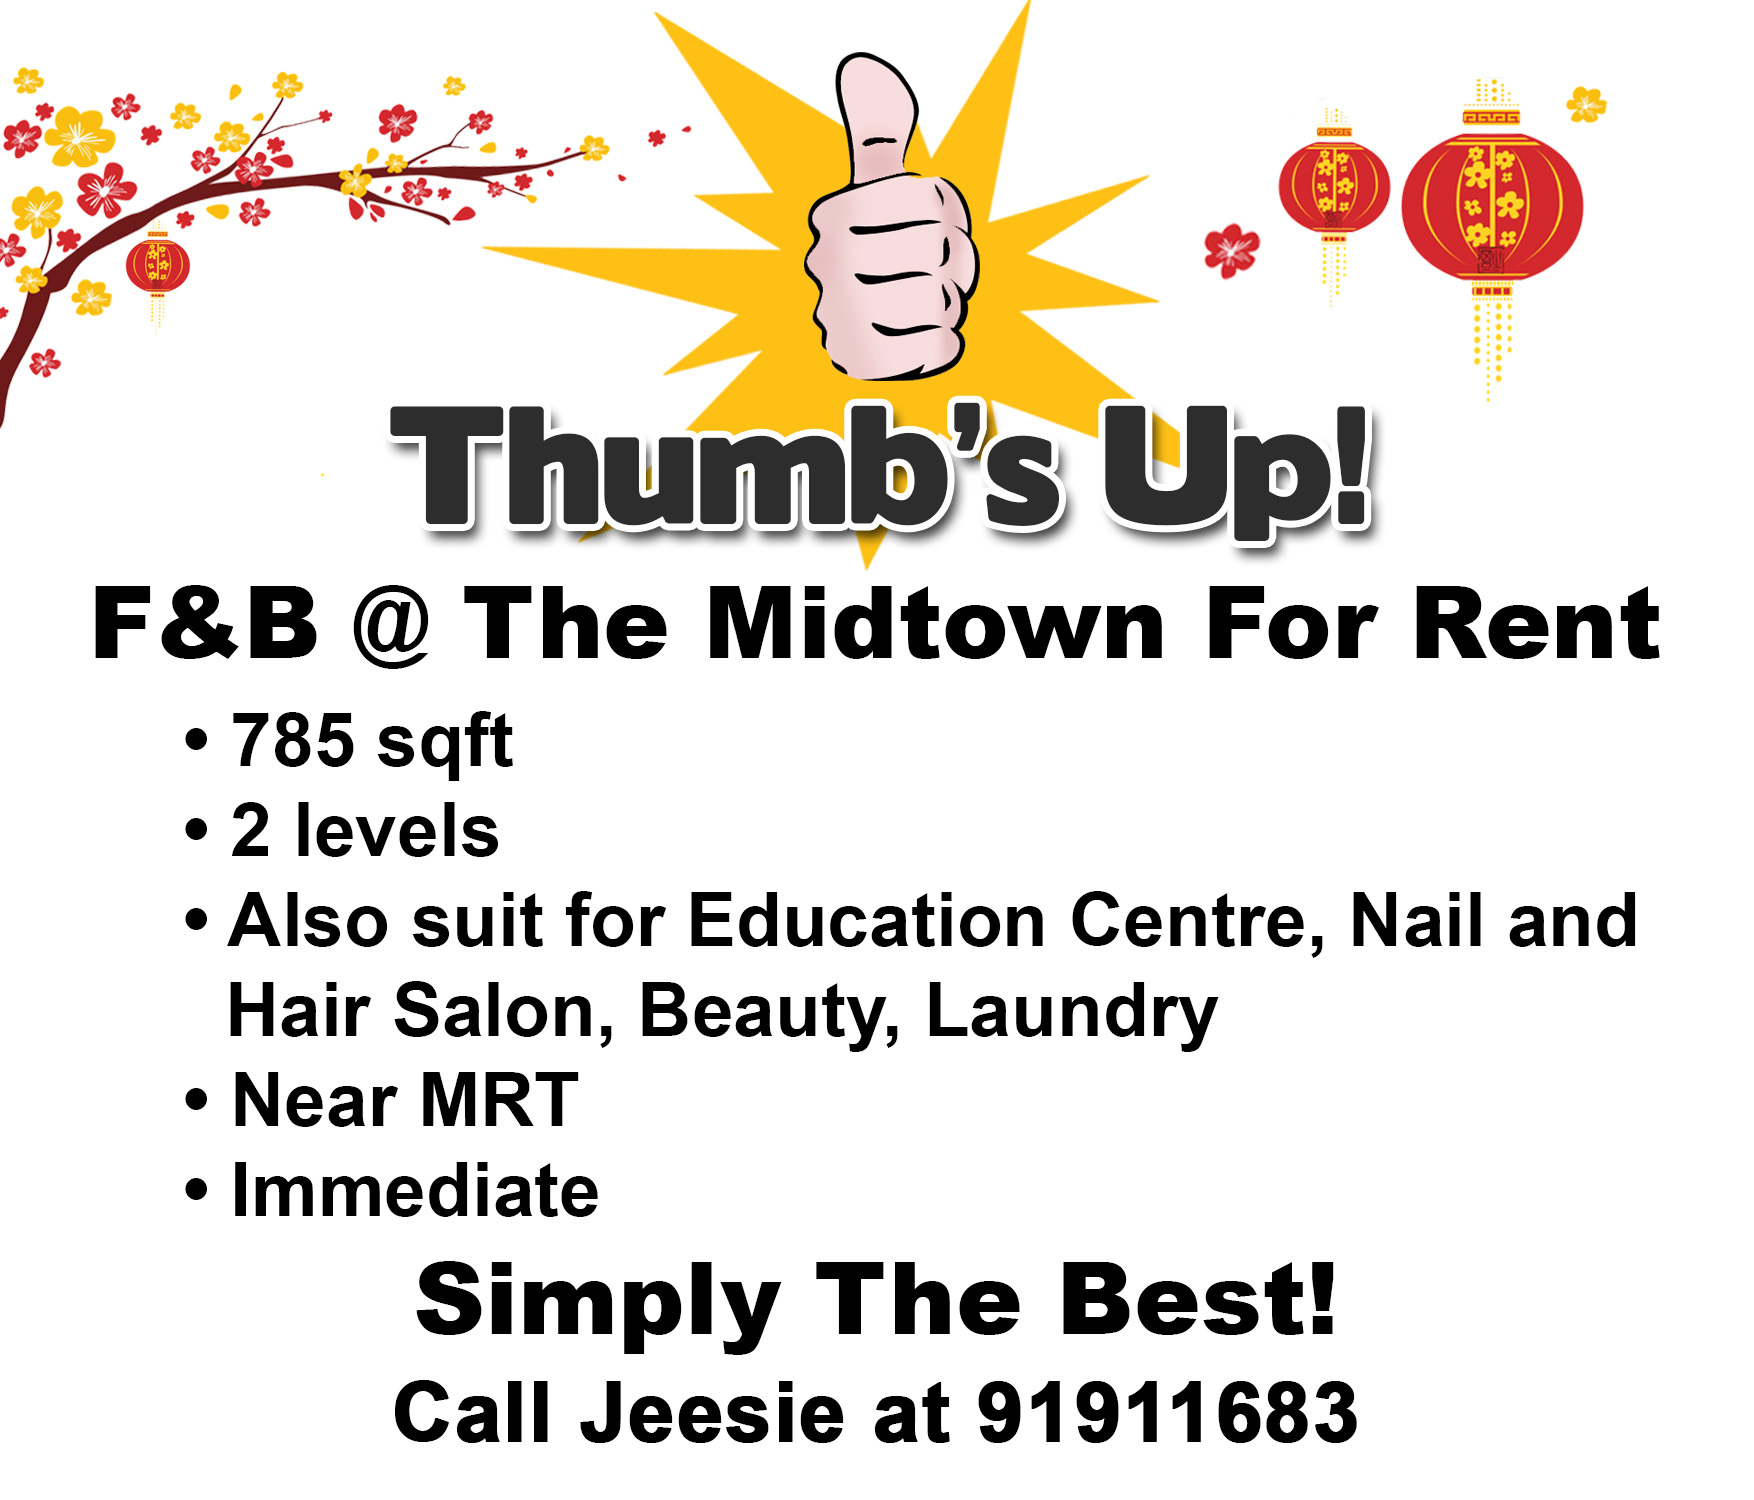 F&B @ The Midtown For Rent